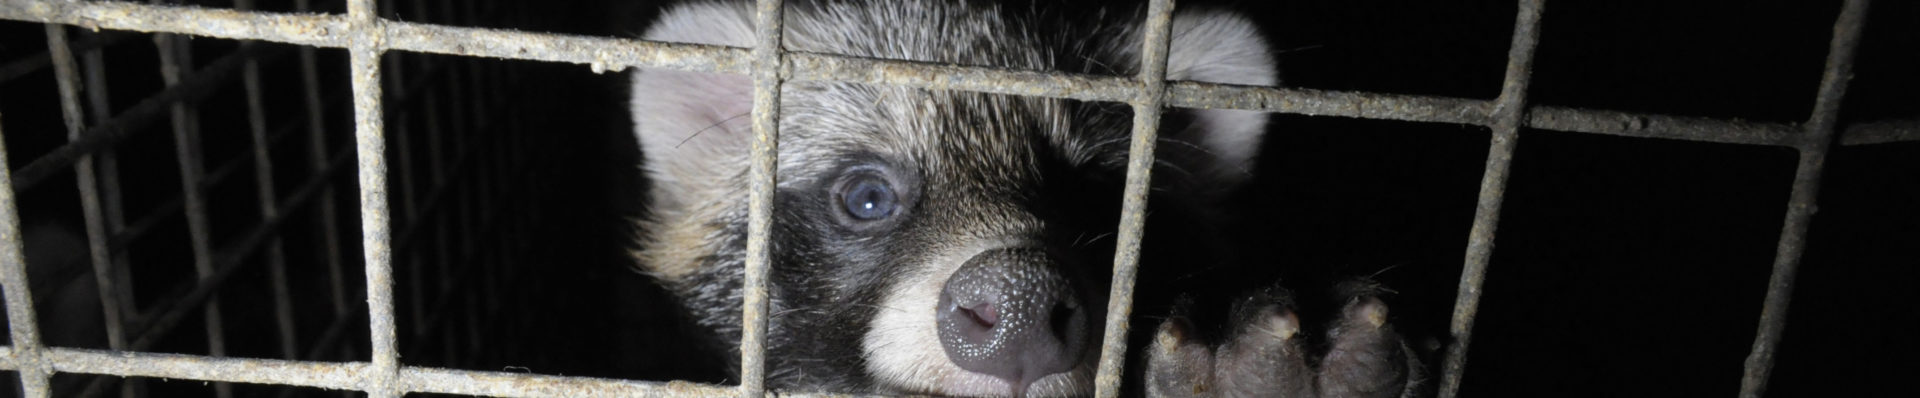 Make Fur History exhibition at the Bosnian Parliament calls for urgent end to fur farming